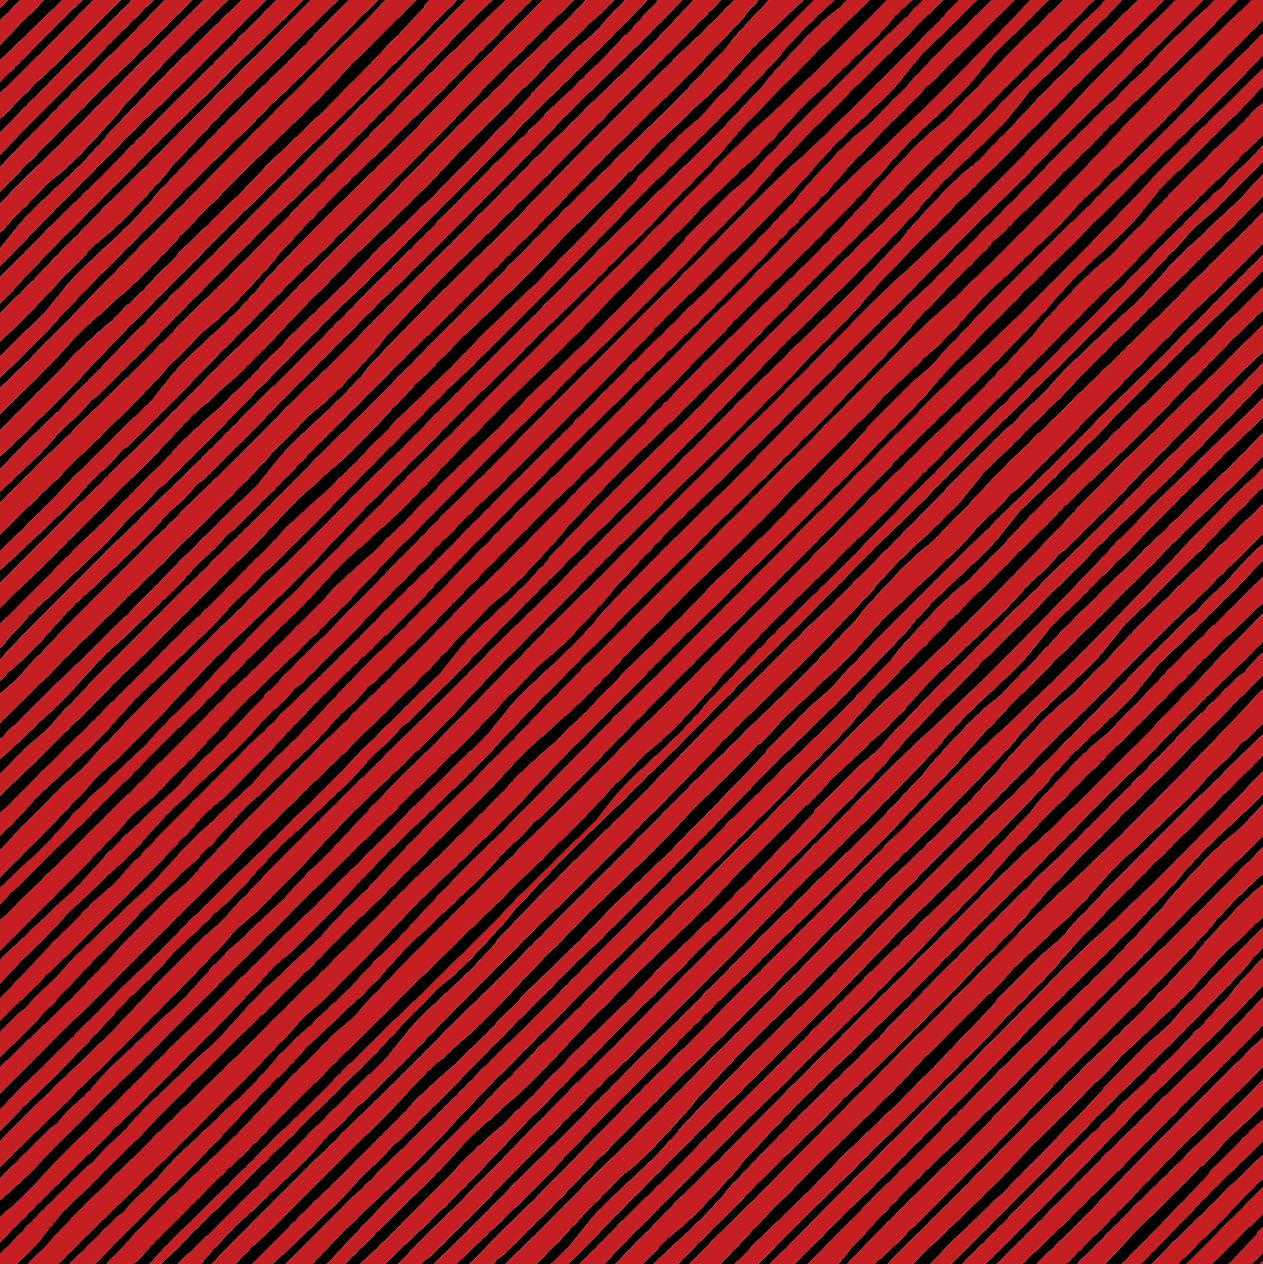 Quirky Bias Stripe Red/Black Fabric